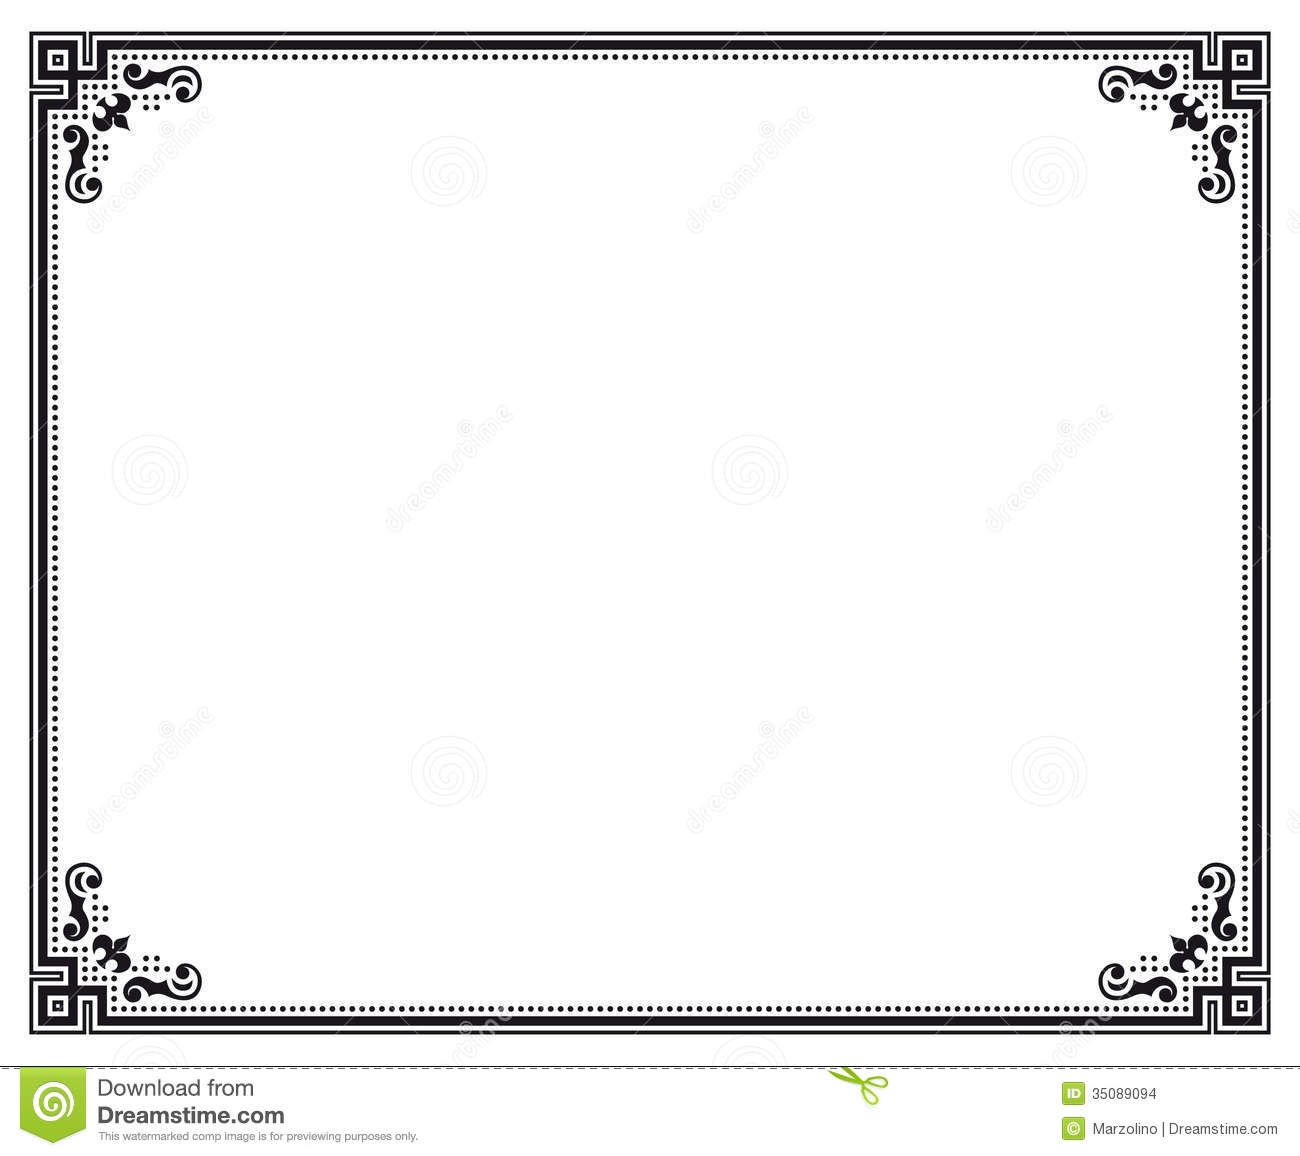 Royalty Free Certificate Border Clip Art, Vector Images